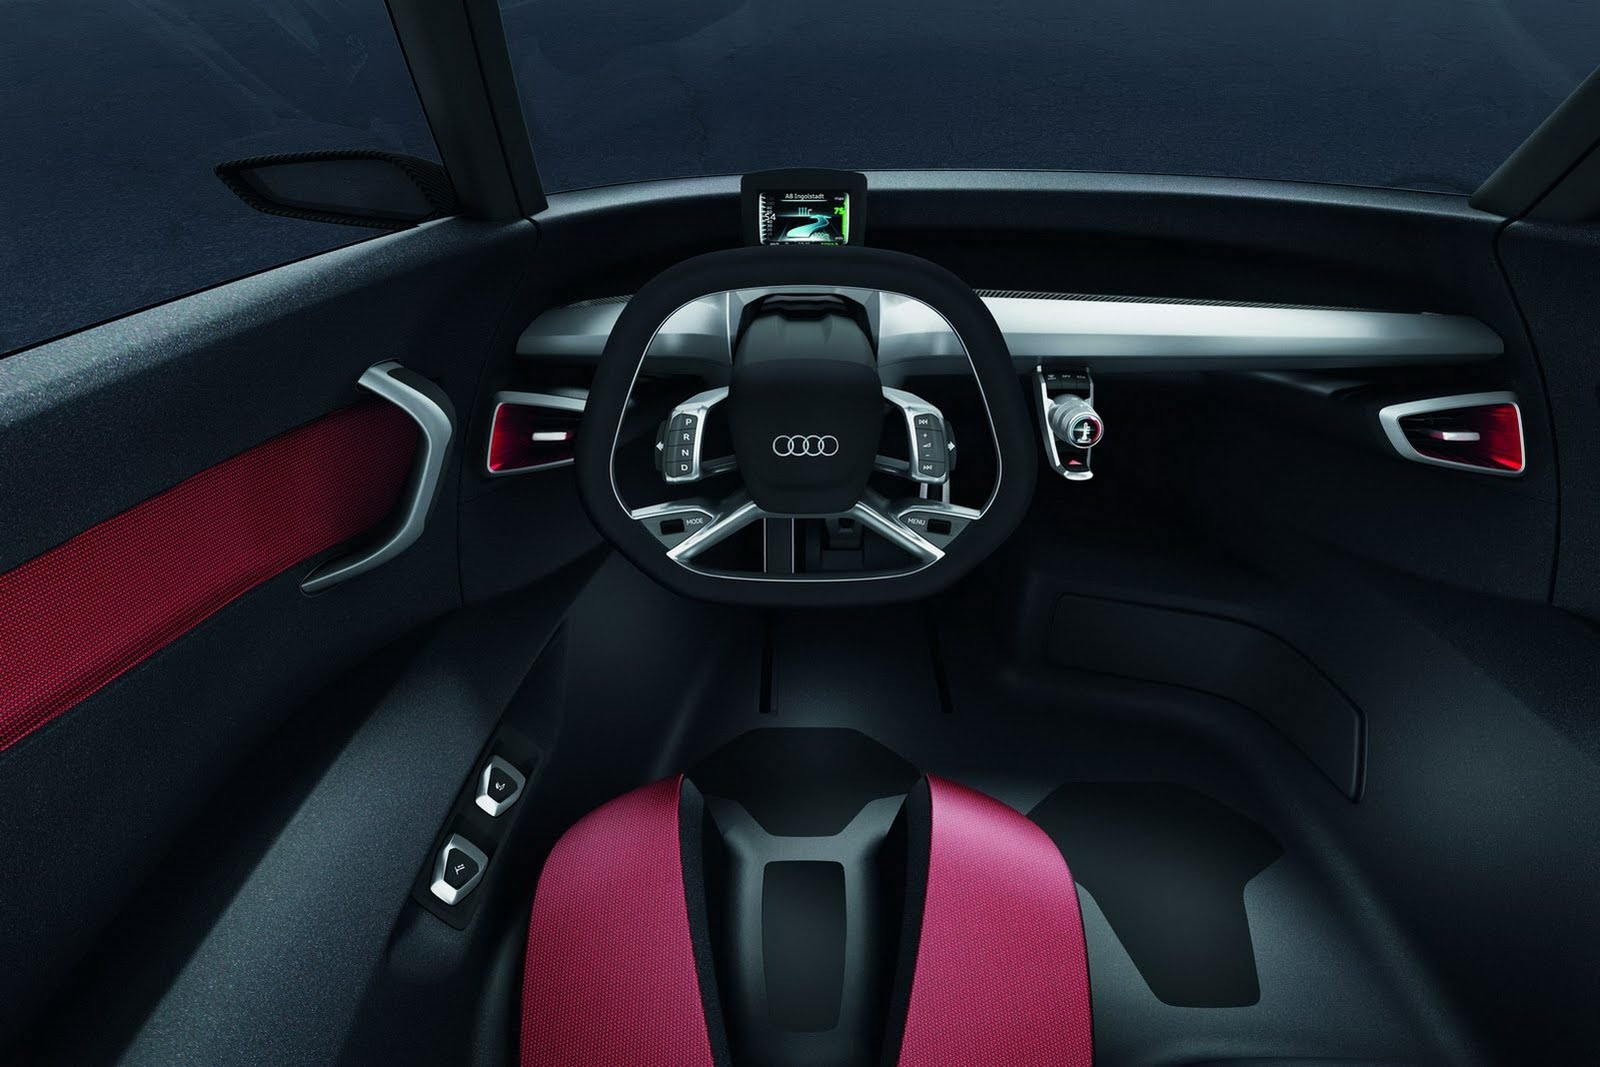 AUDI URBAN SPORTBACK AND SPYDER CONCEPTS 12 AUDI RELEASES NEW IMAGES OF URBAN SPORTBACK AND SPYDER CONCEPTS